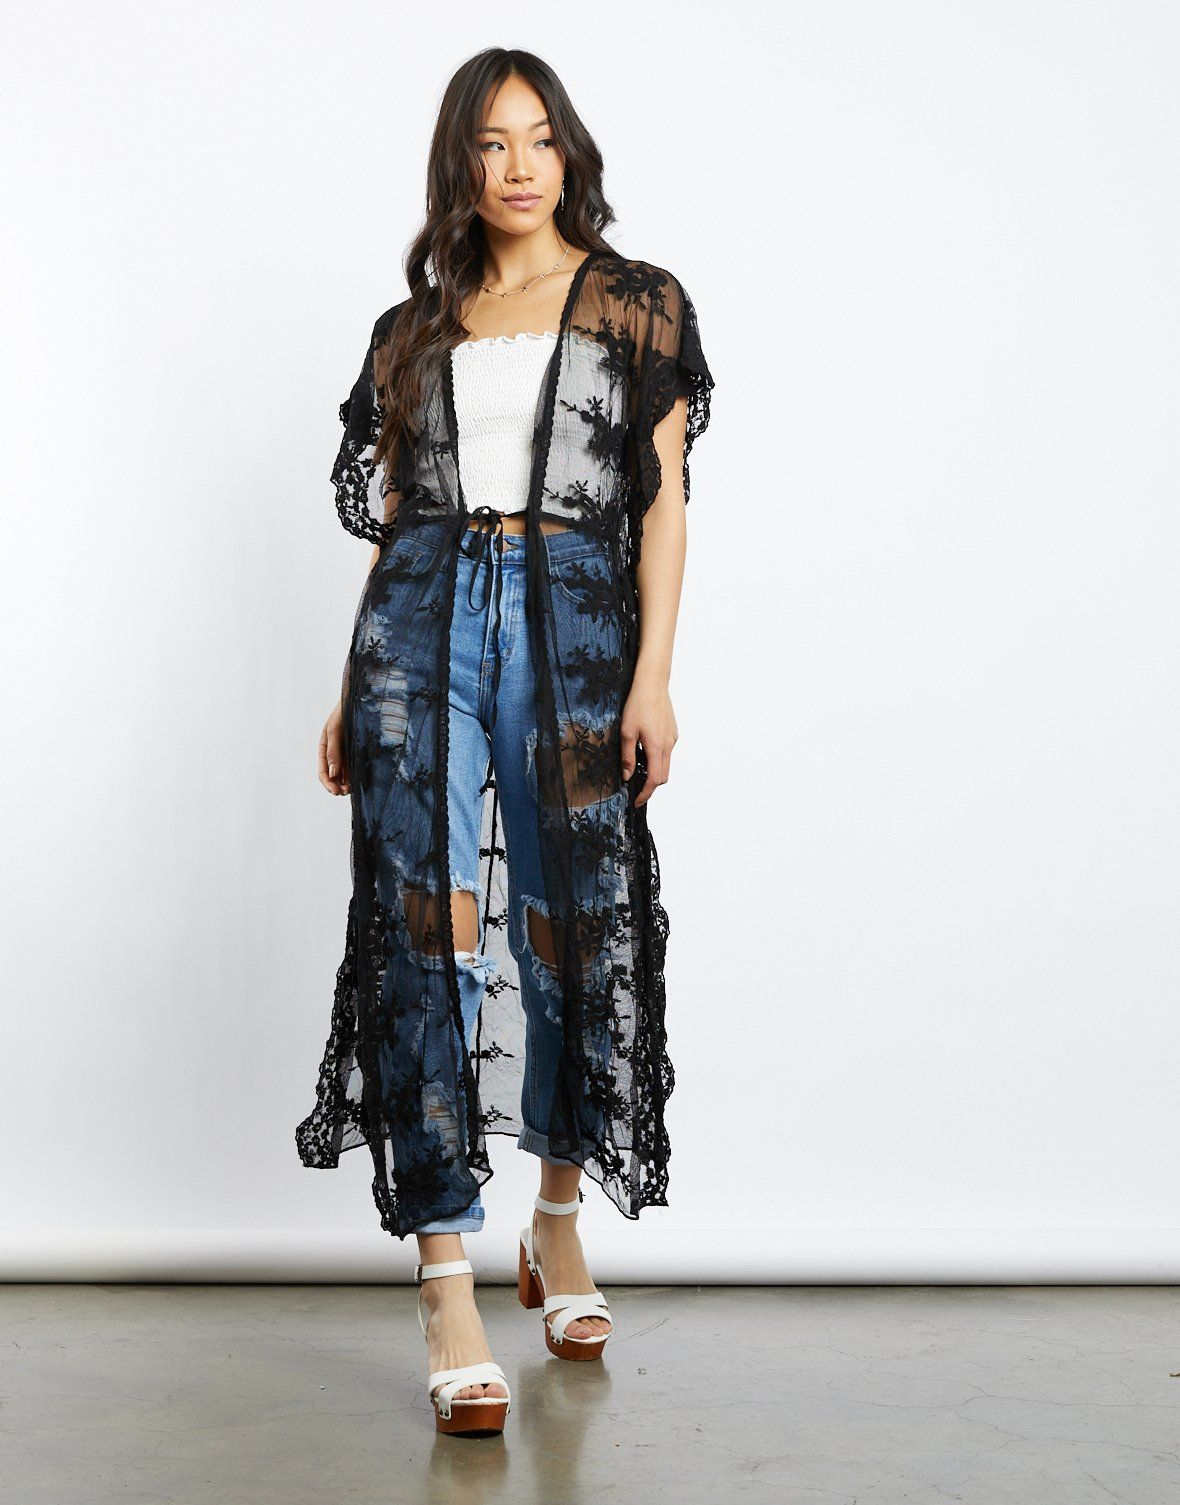 a62134d2a962a Darcy Long Lace Kimono in 2019 | Summer Outfits | Lace kimono, Lace ...